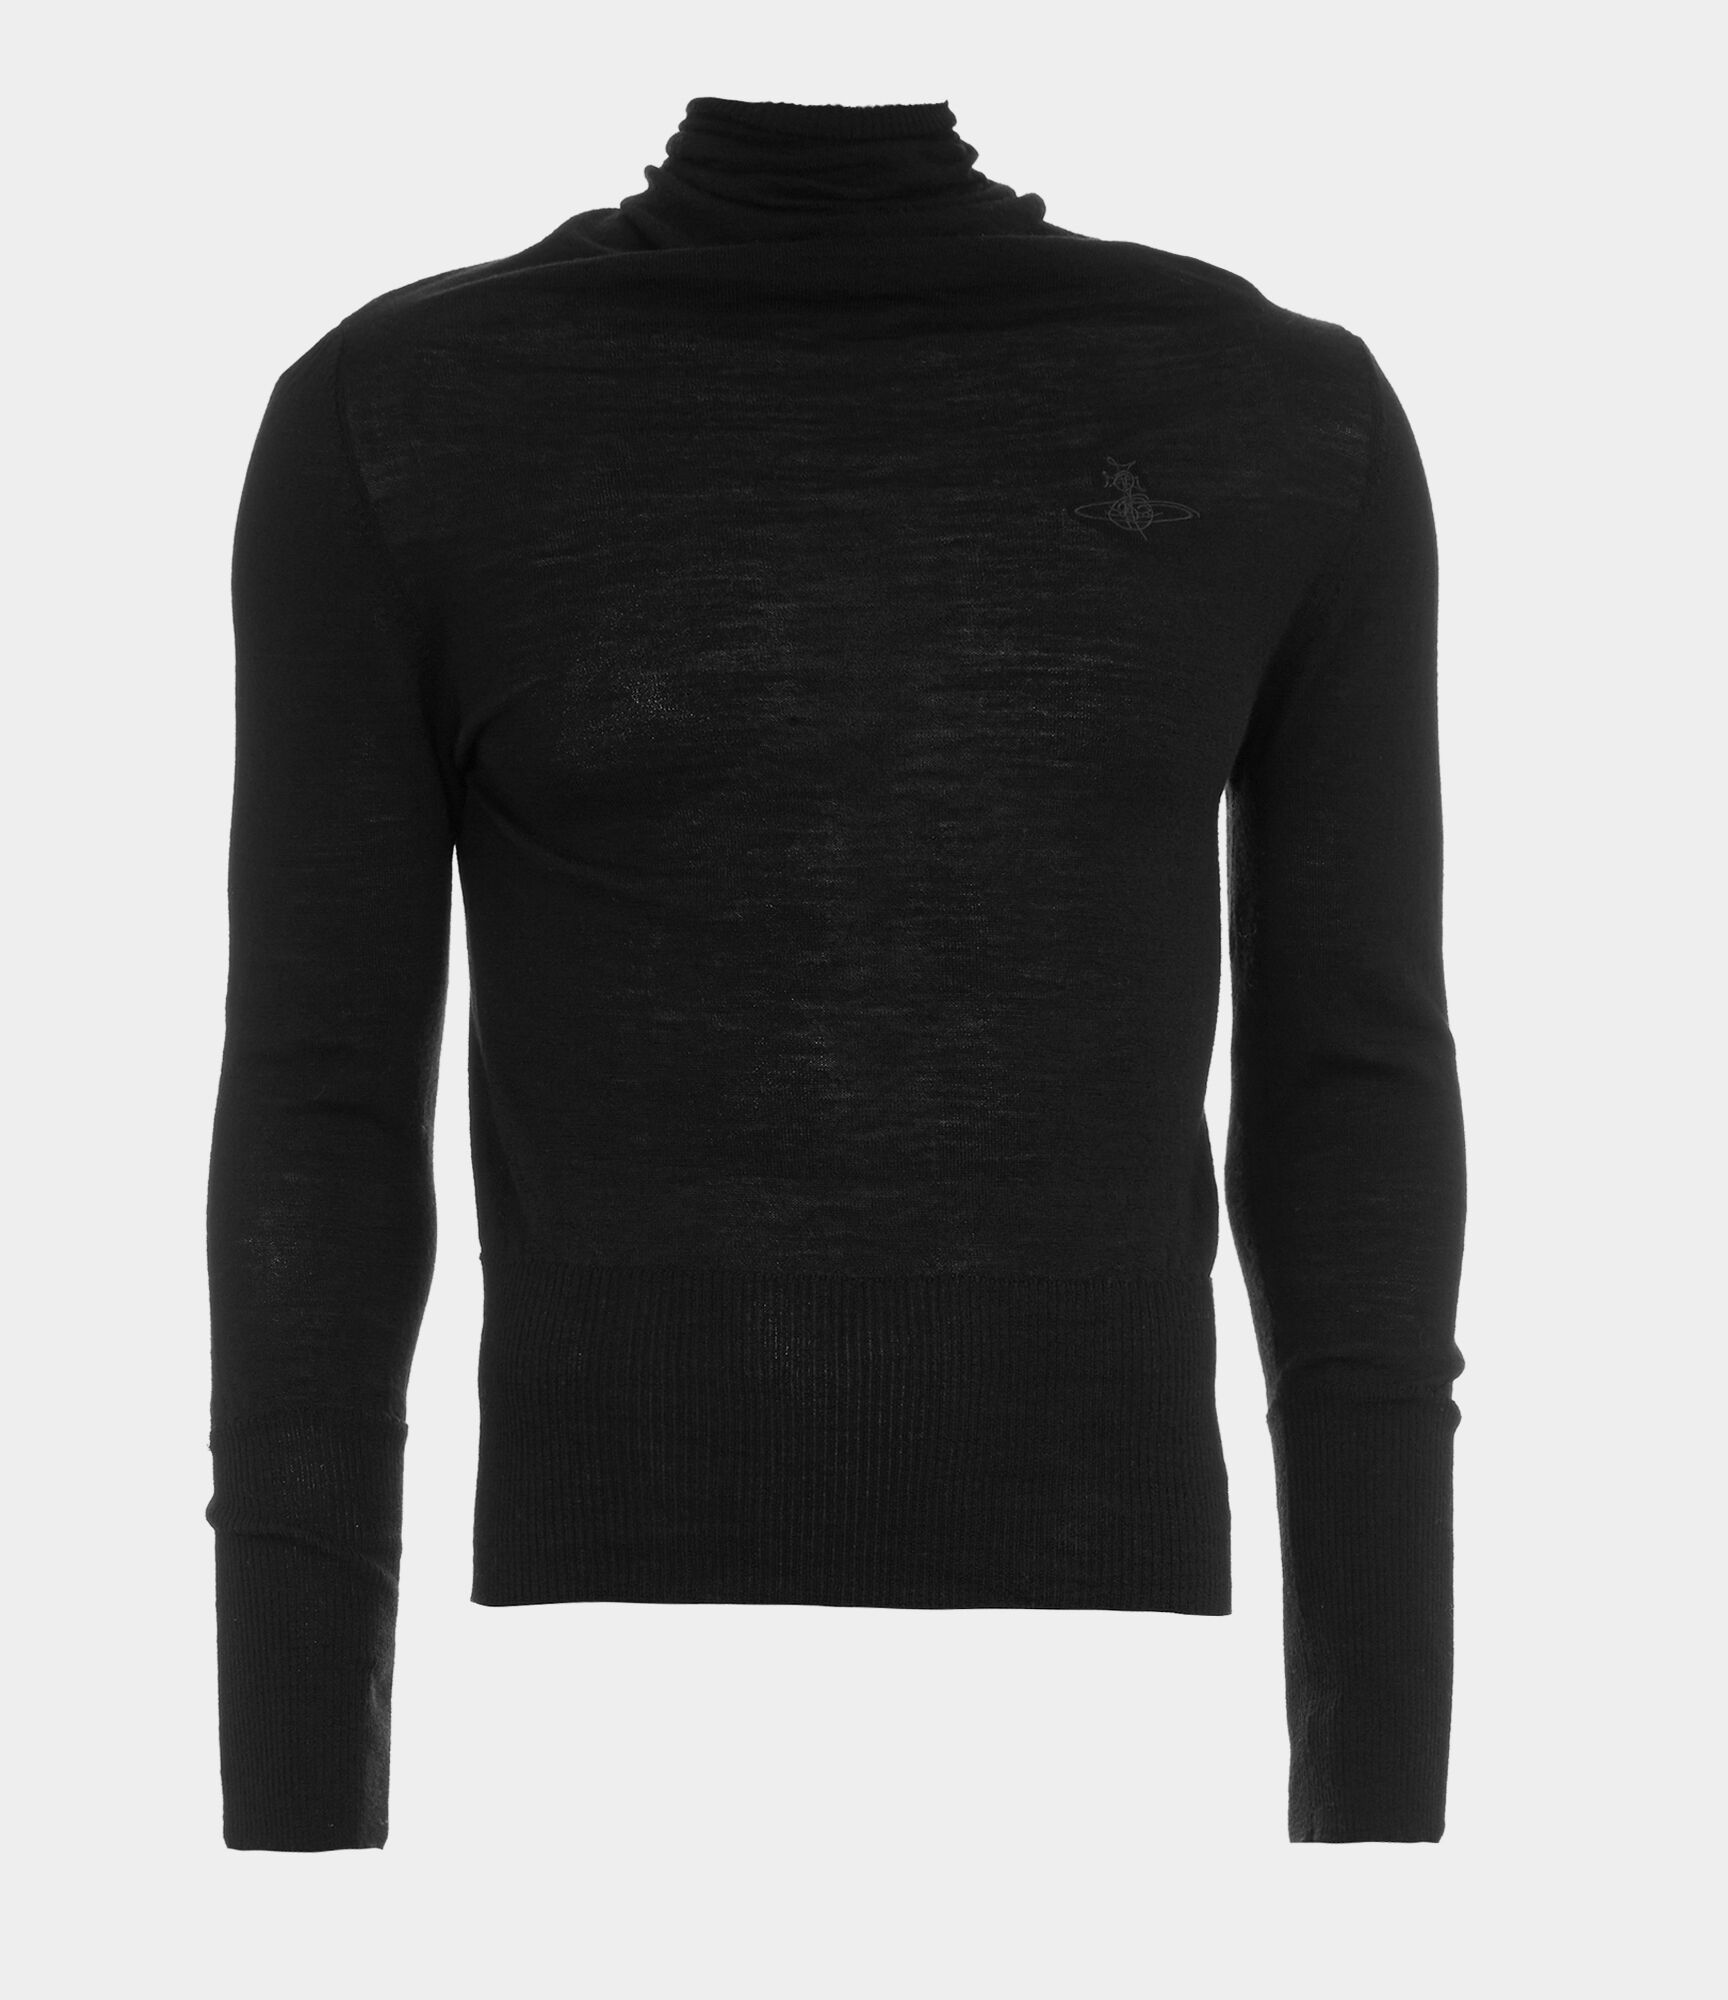 Cheap Sneakernews View Sale Online KNITWEAR - Jumpers Gladius Very Cheap Price Clearance With Mastercard nFWFOjRJYe